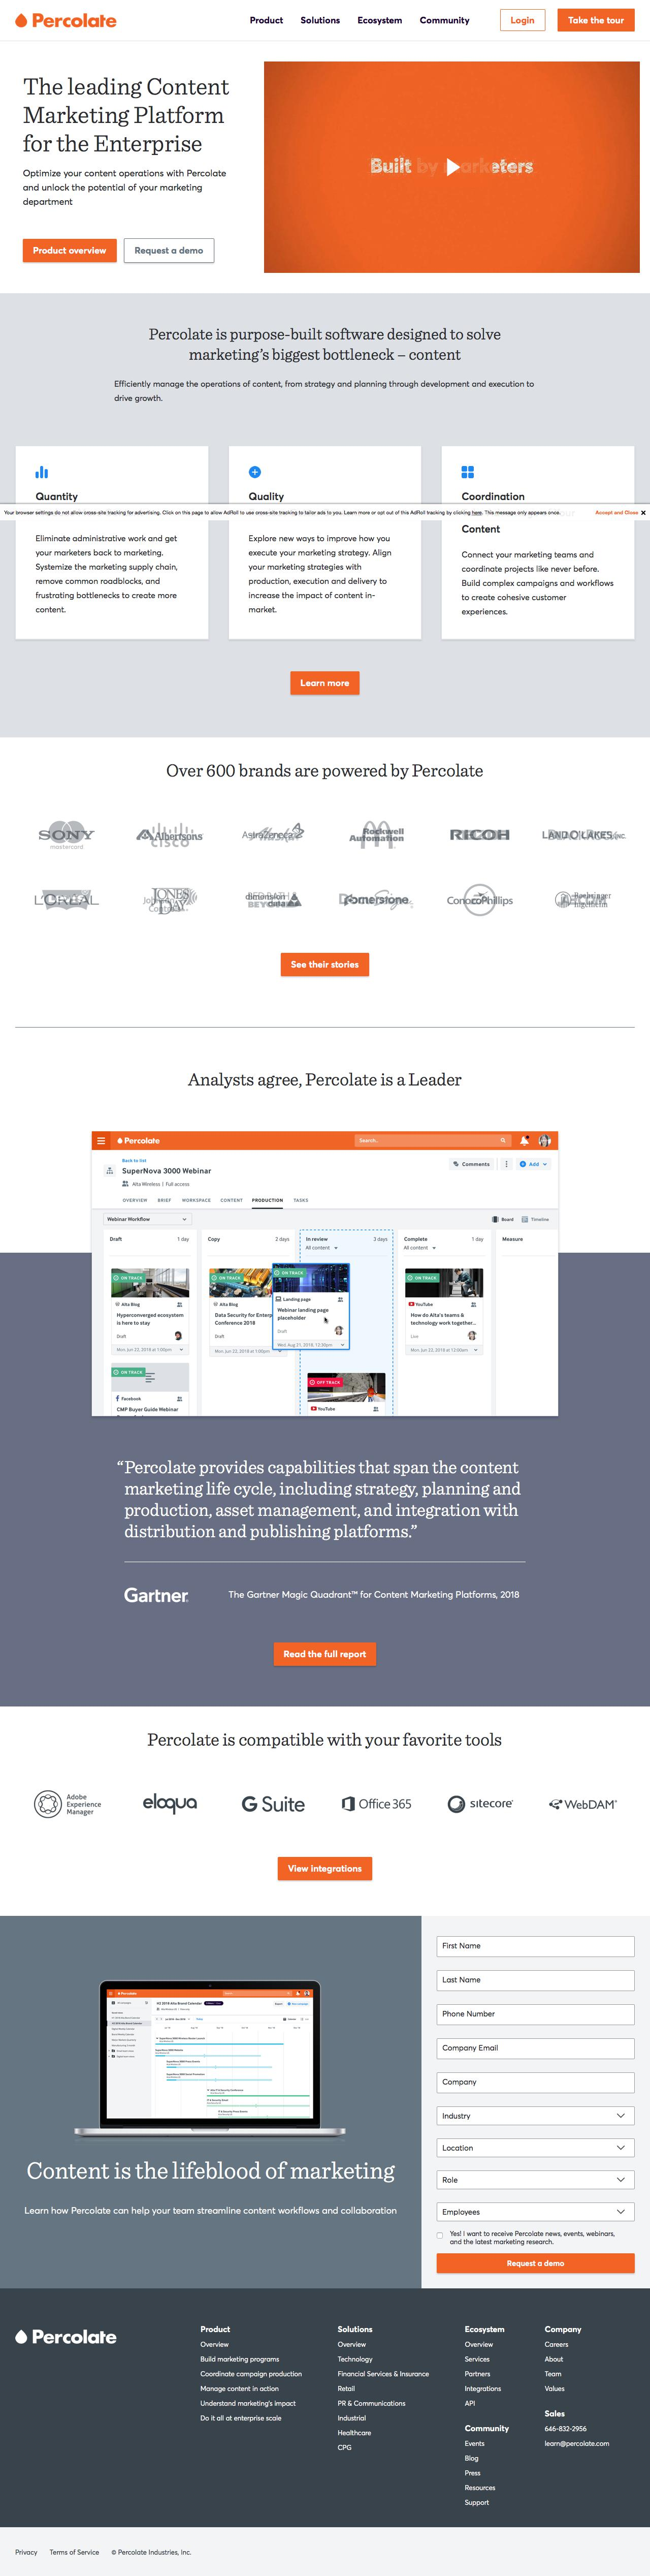 Screenshot of percolate.com - Percolate | The leading Content Marketing Platform - captured June 12, 2018